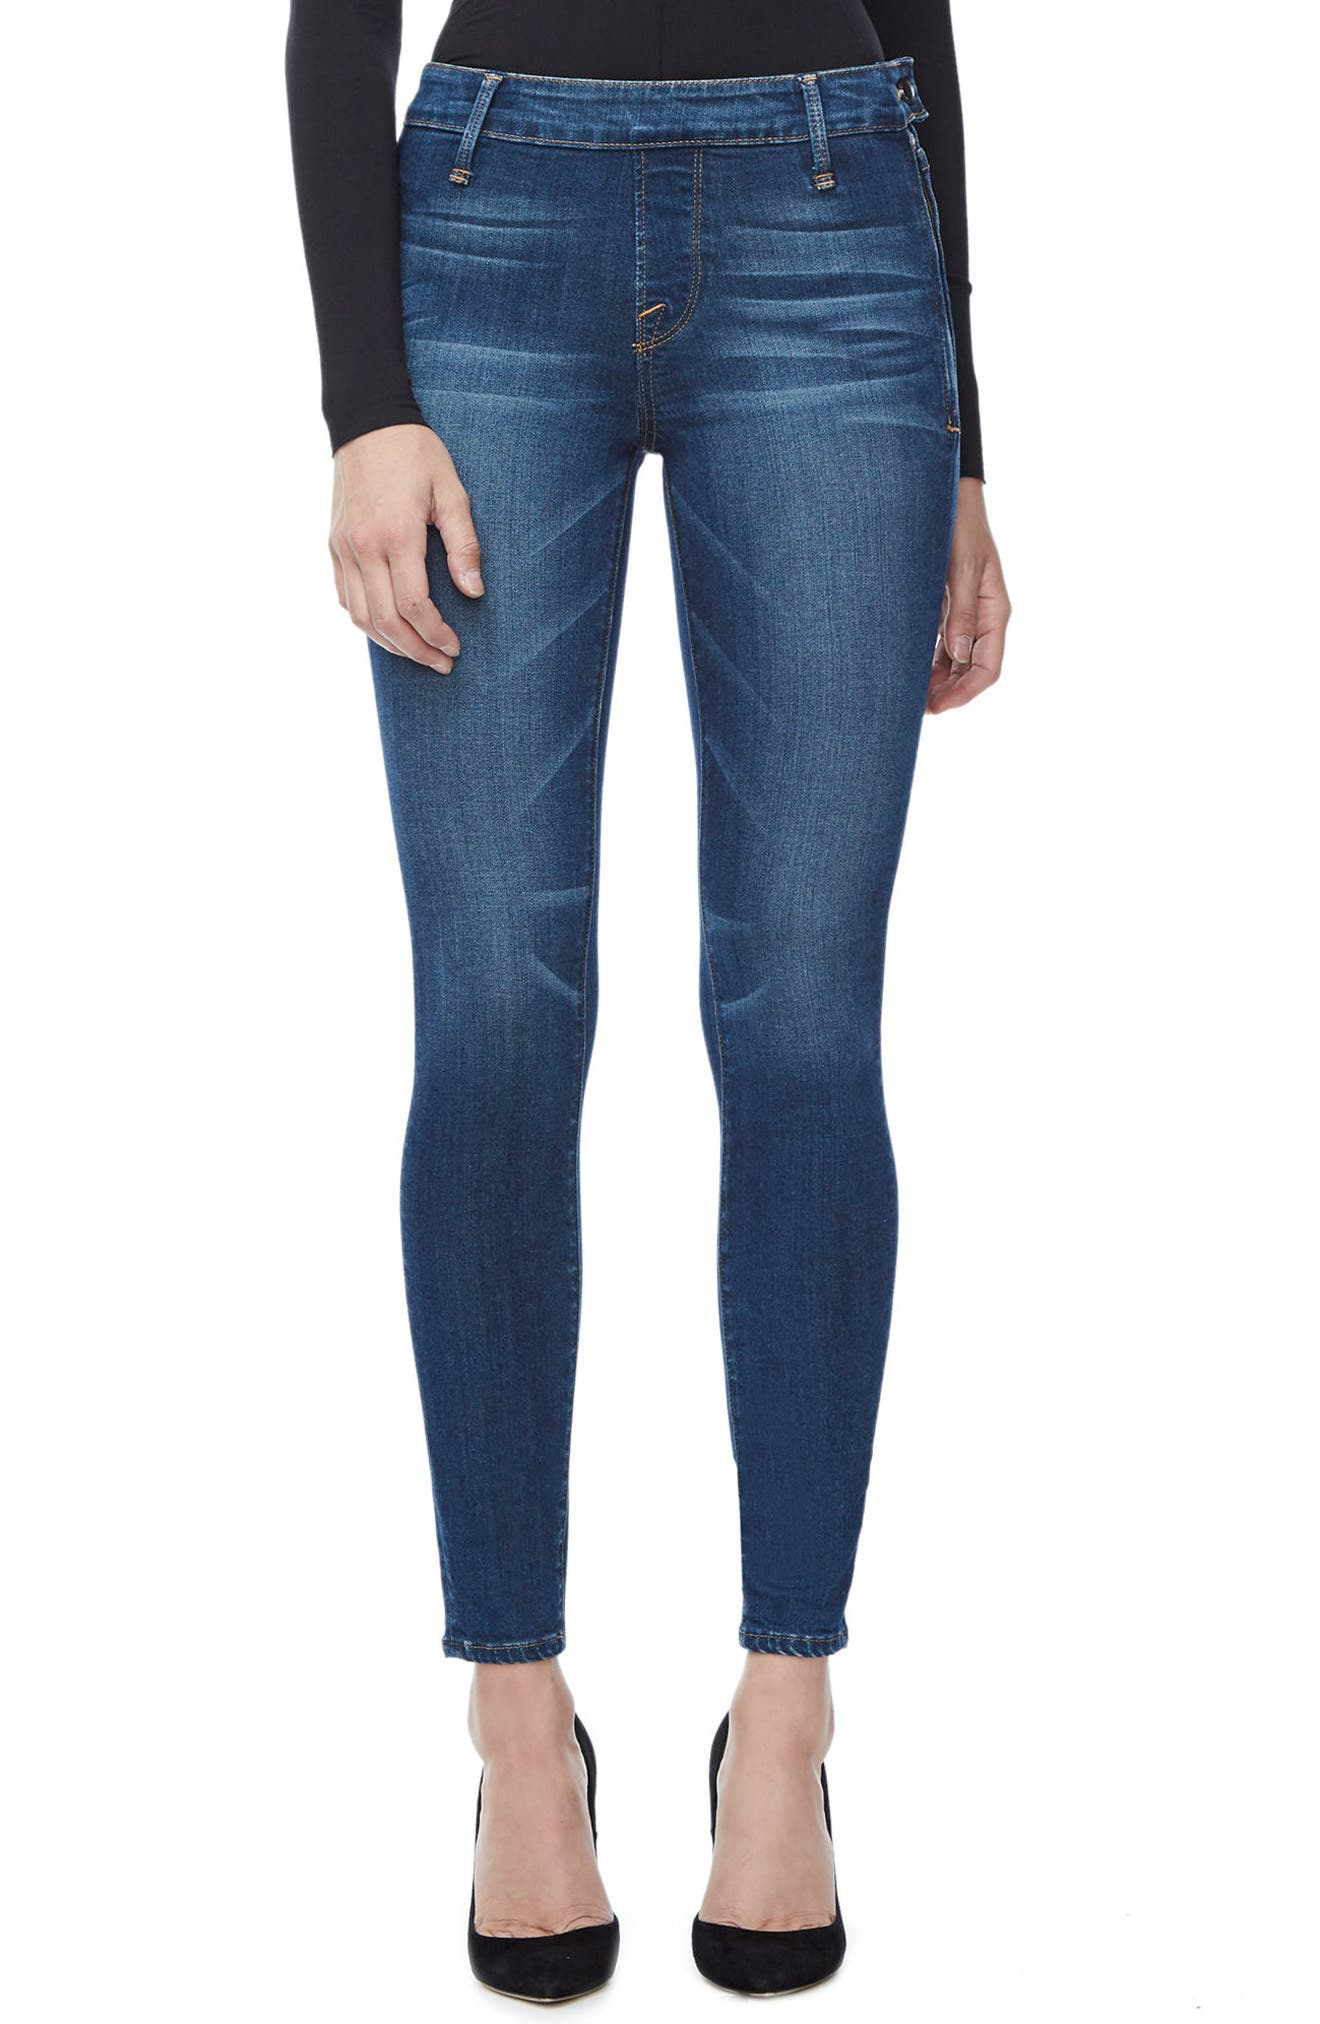 Main Image - Good American The Slim Zip High Waist Ankle Skinny Jeans (Blue 013) (Regular & Plus Size)